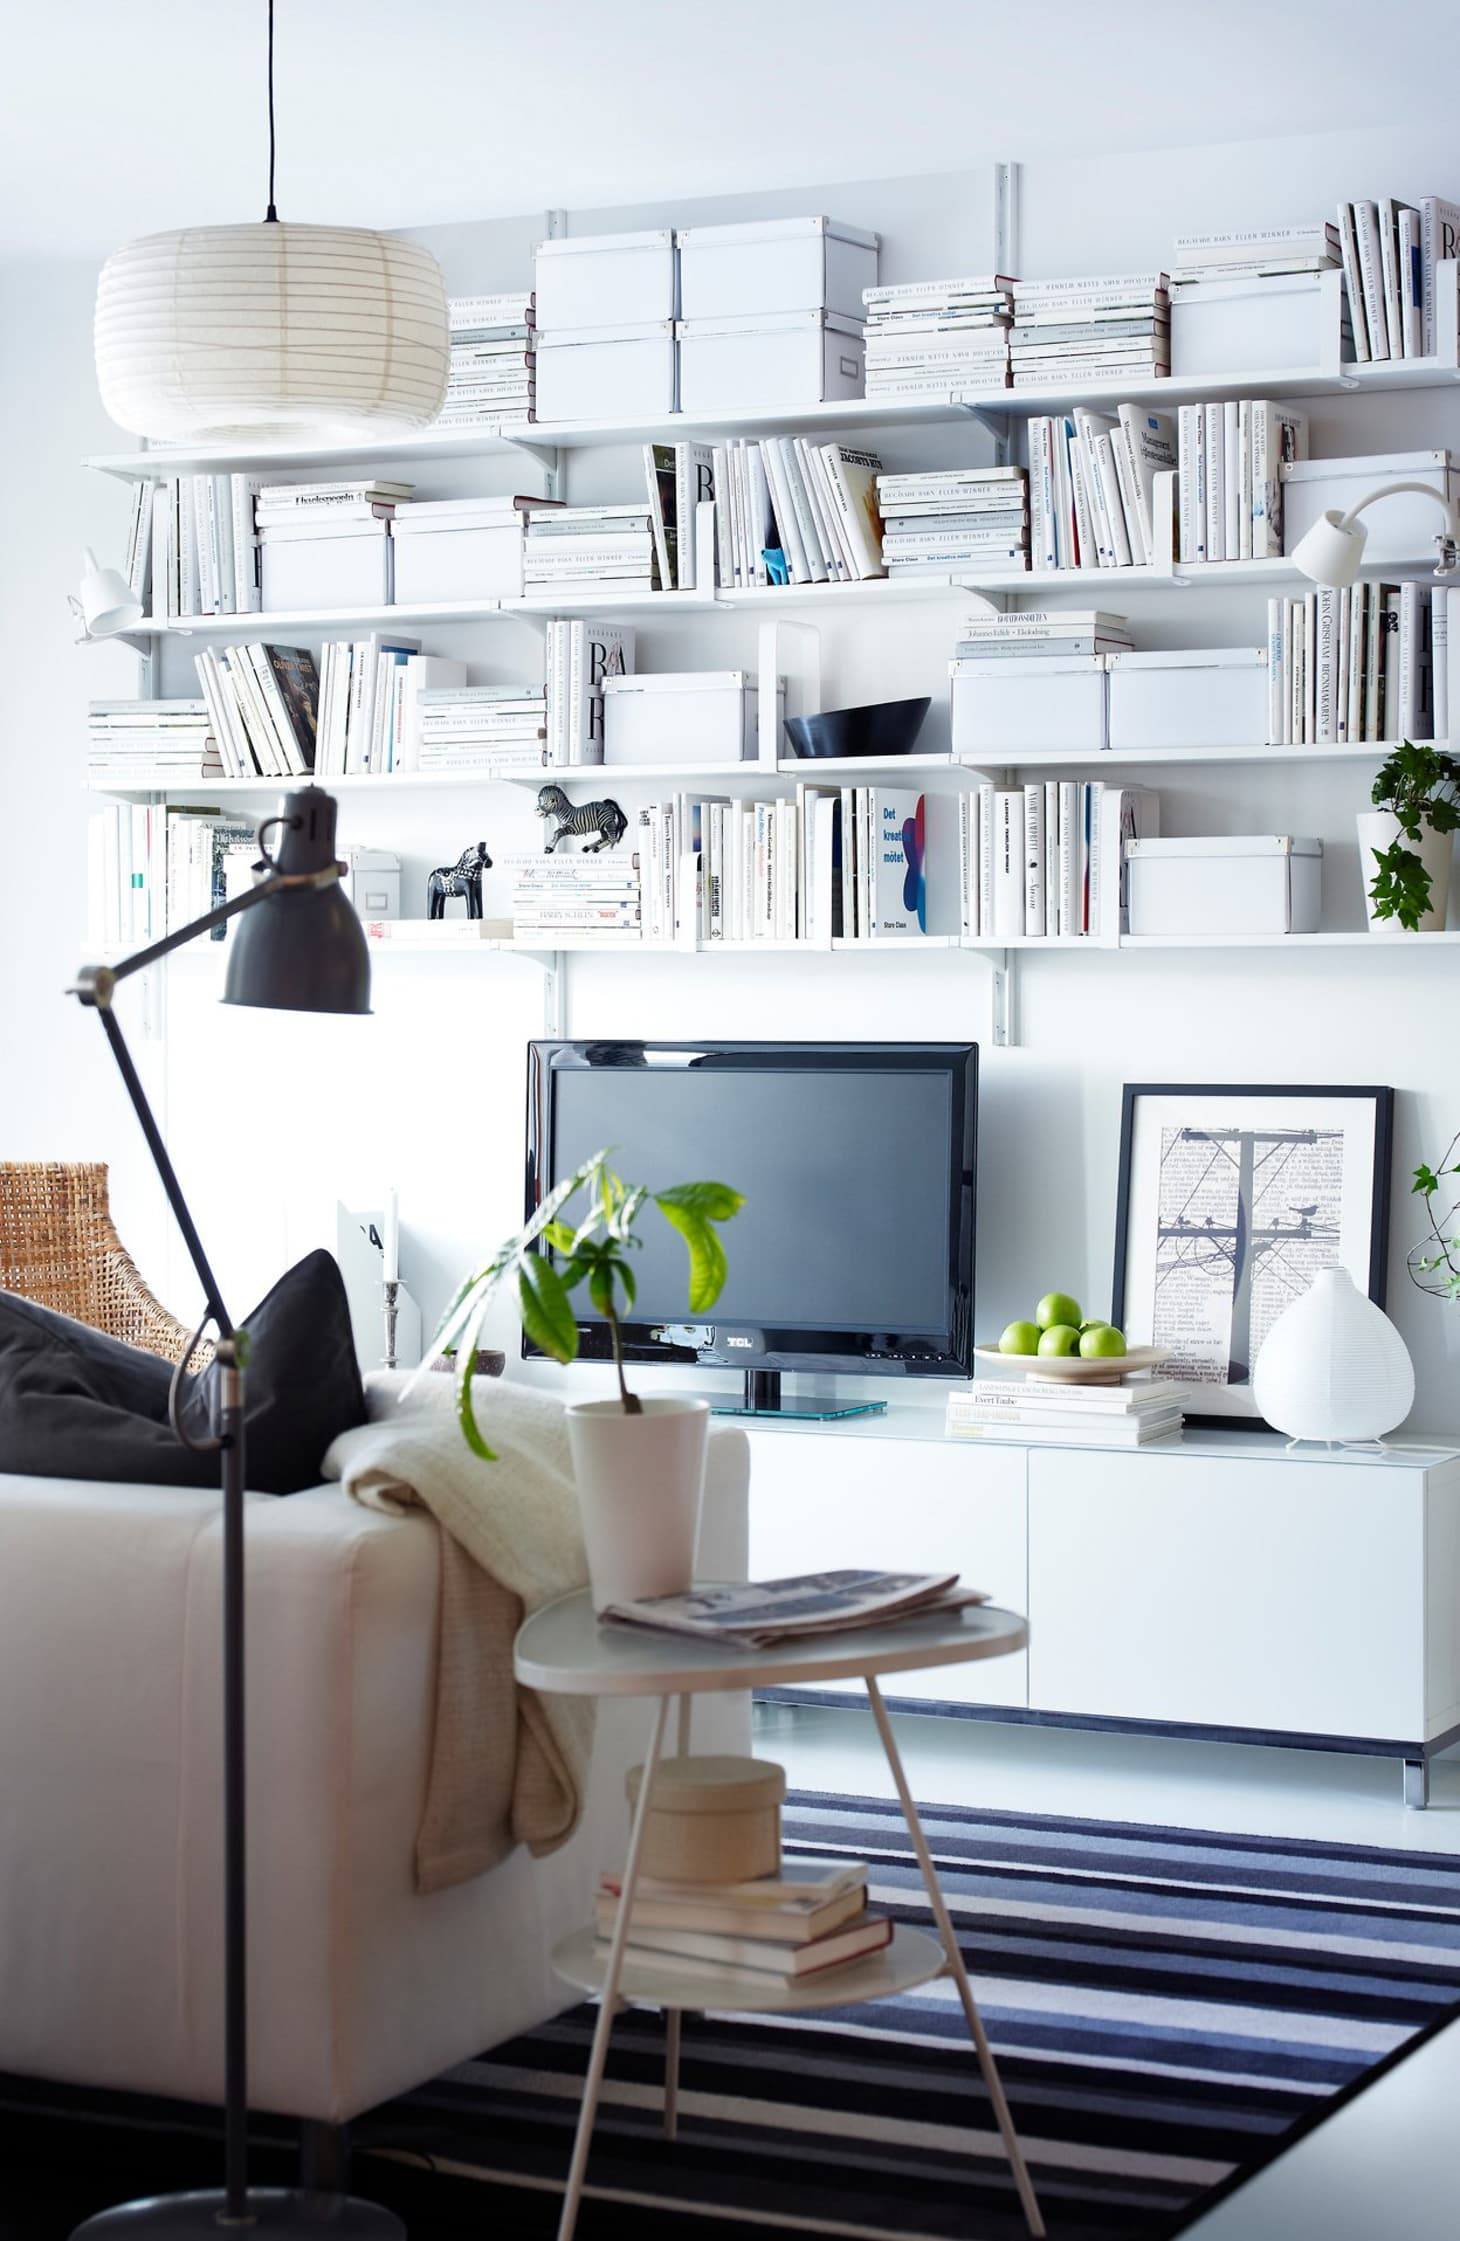 Decorating Small Open Floor Plan Living Room And Kitchen: The Best IKEA Products For Small Spaces